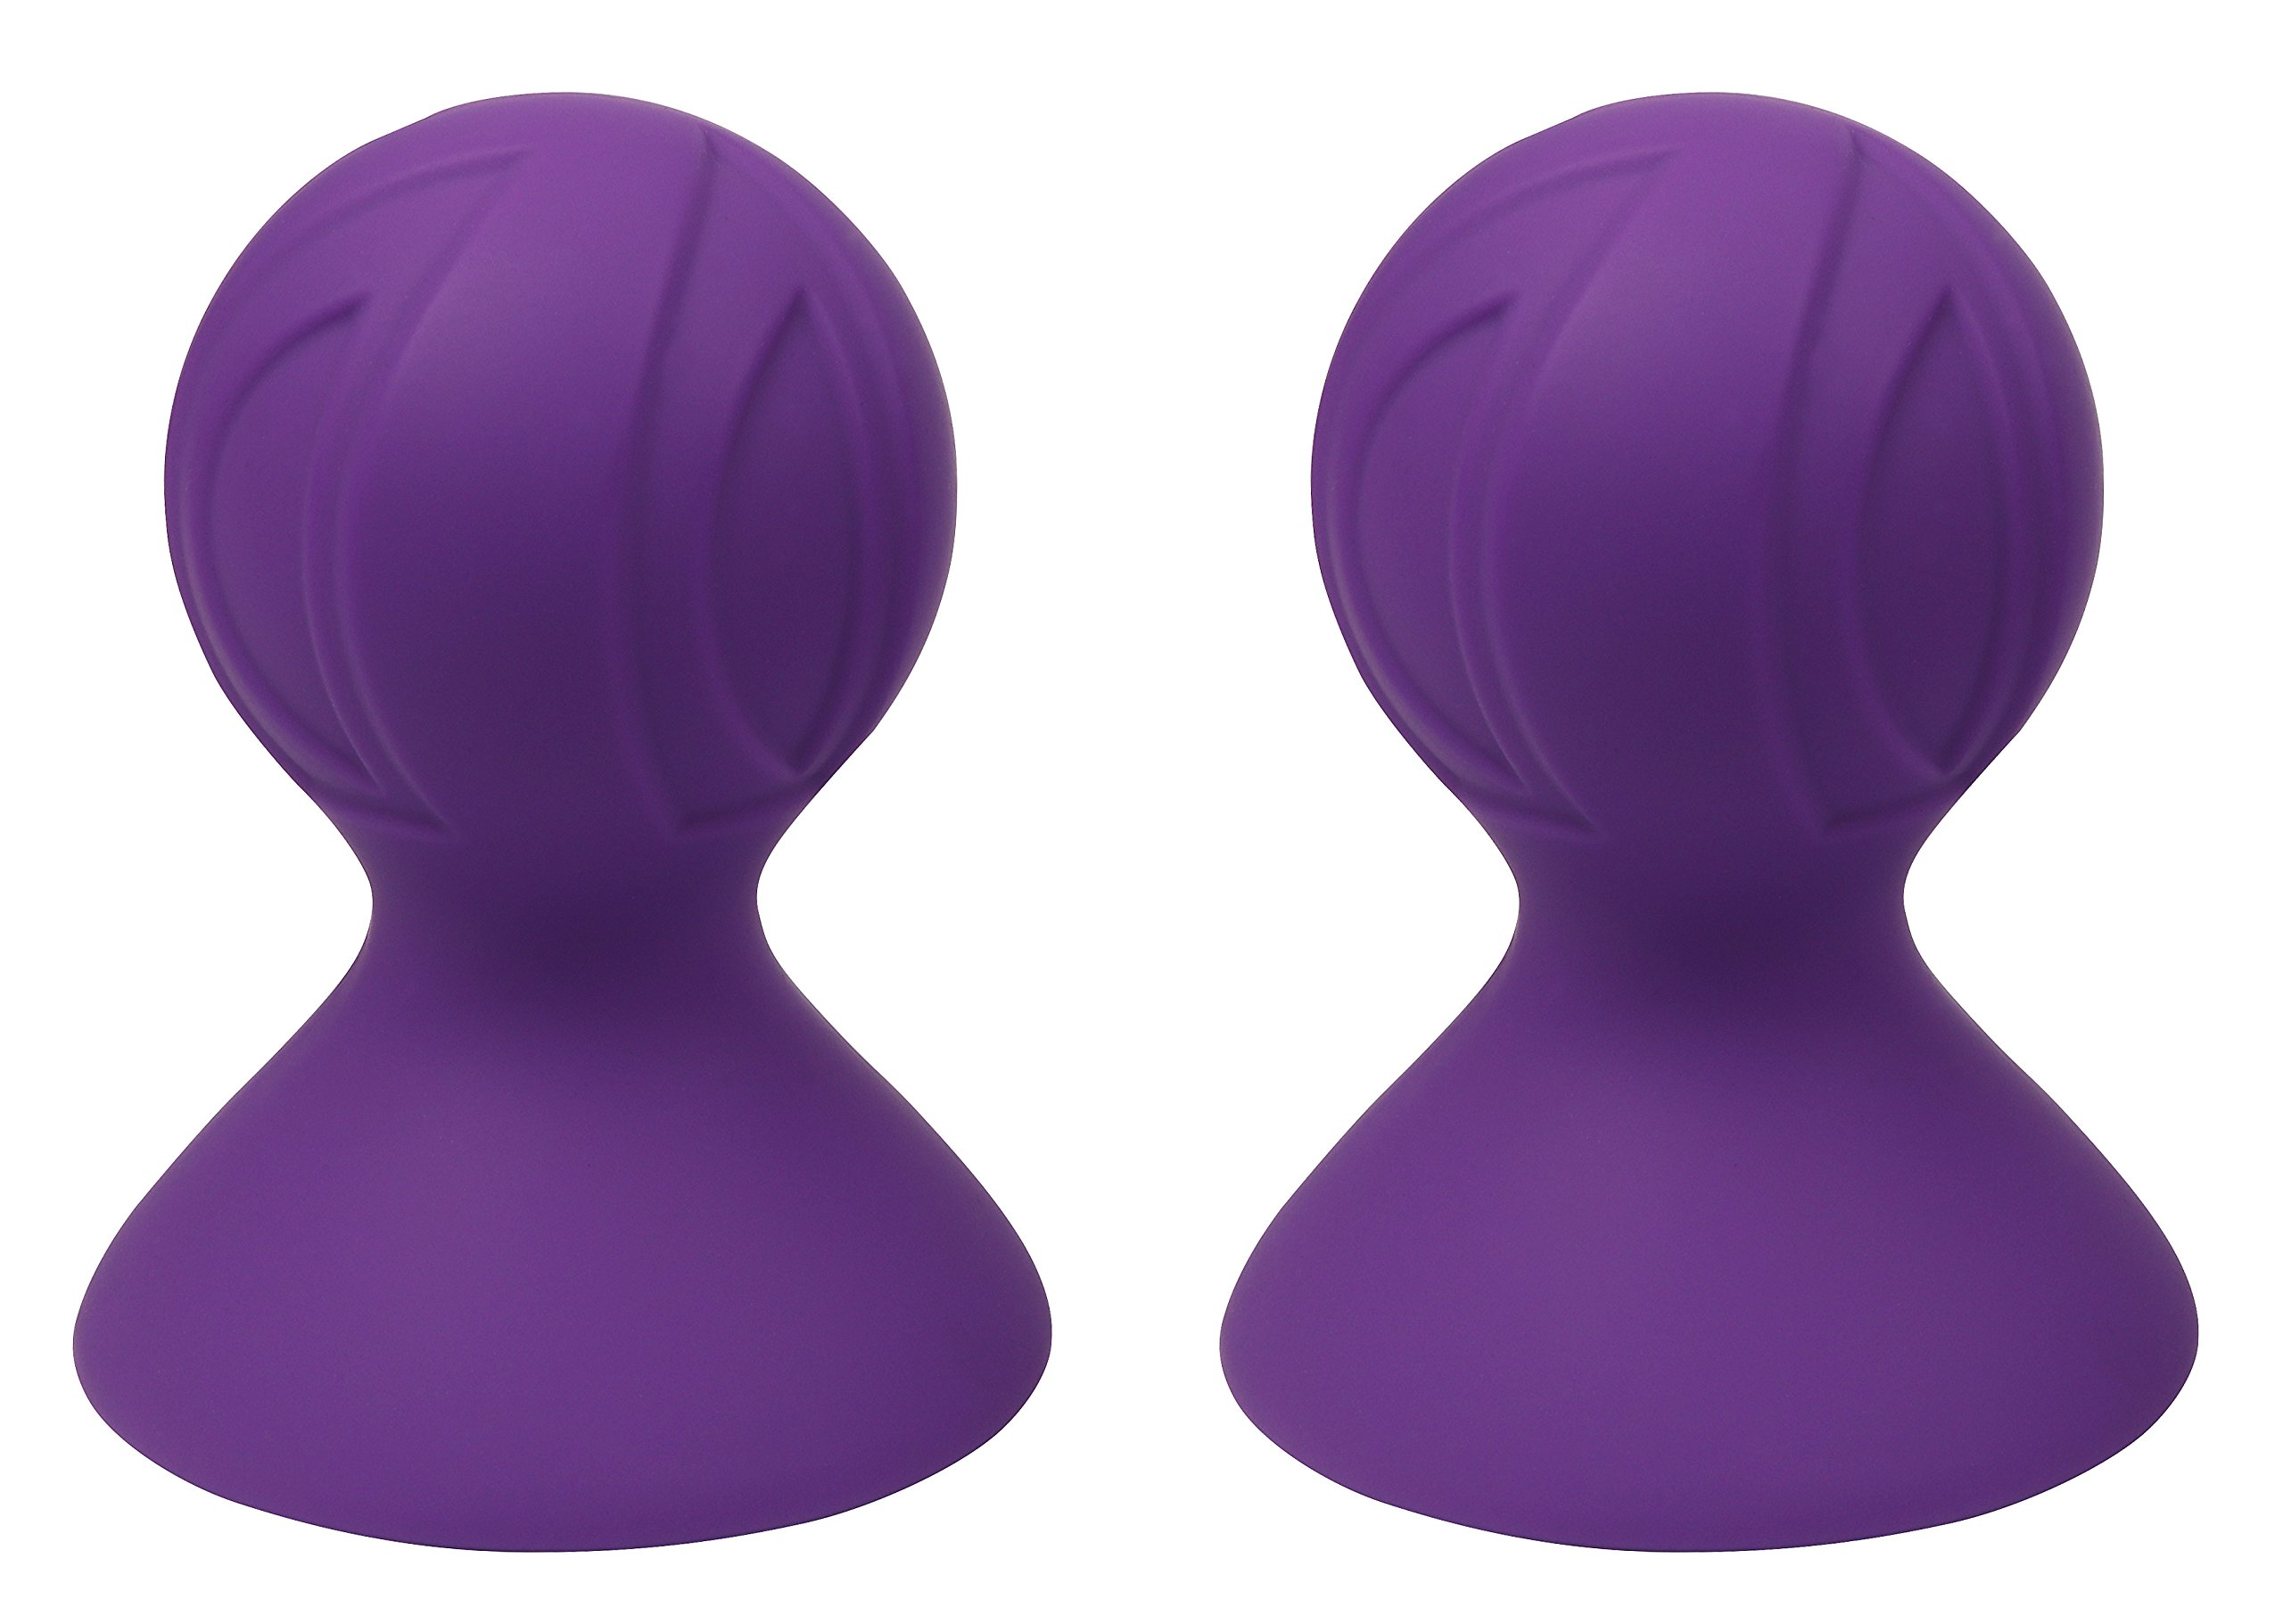 NippleSuckers FDA-Approved Silicone Nipple Suction Discreet Package 2-Pack Purple (Suction Cup Dia. 3.18 inch)